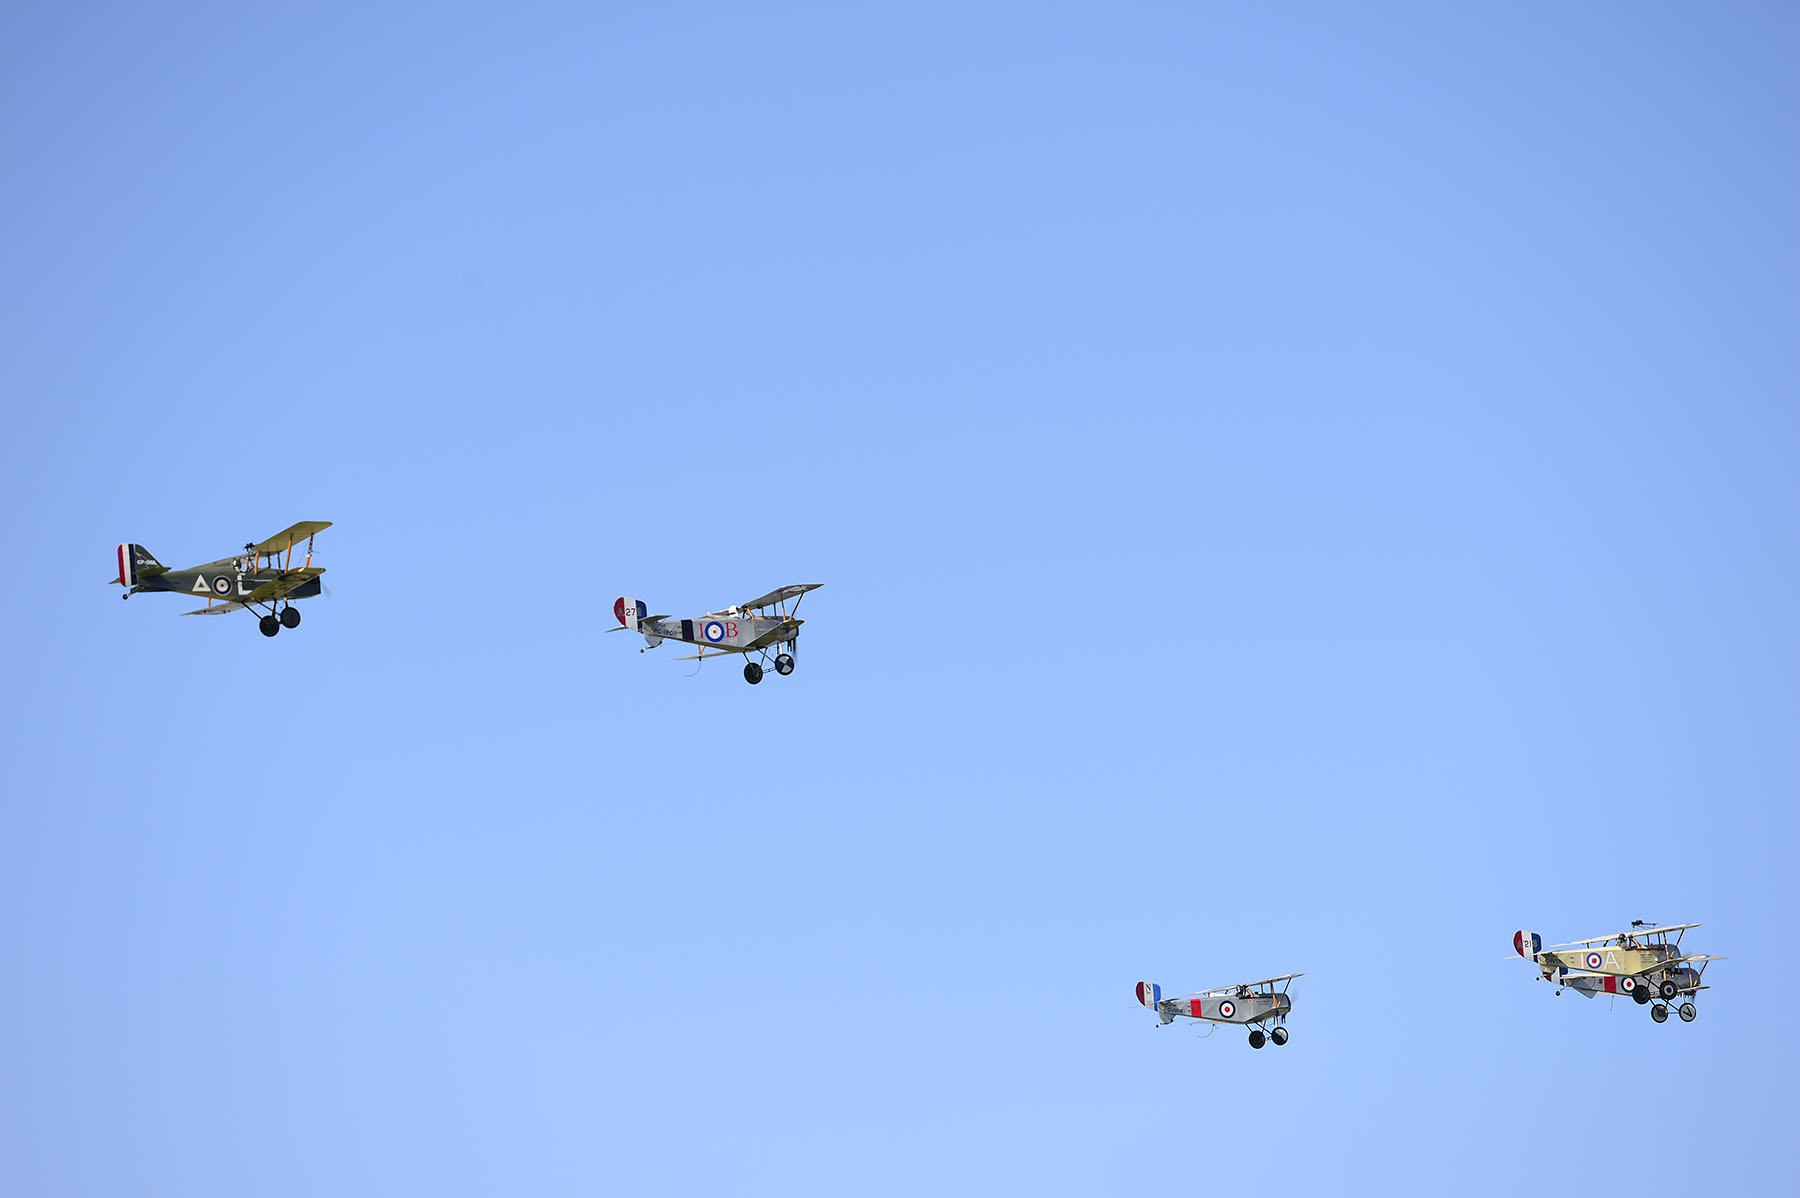 The ceremony included a fly-past of vintage aircraft.